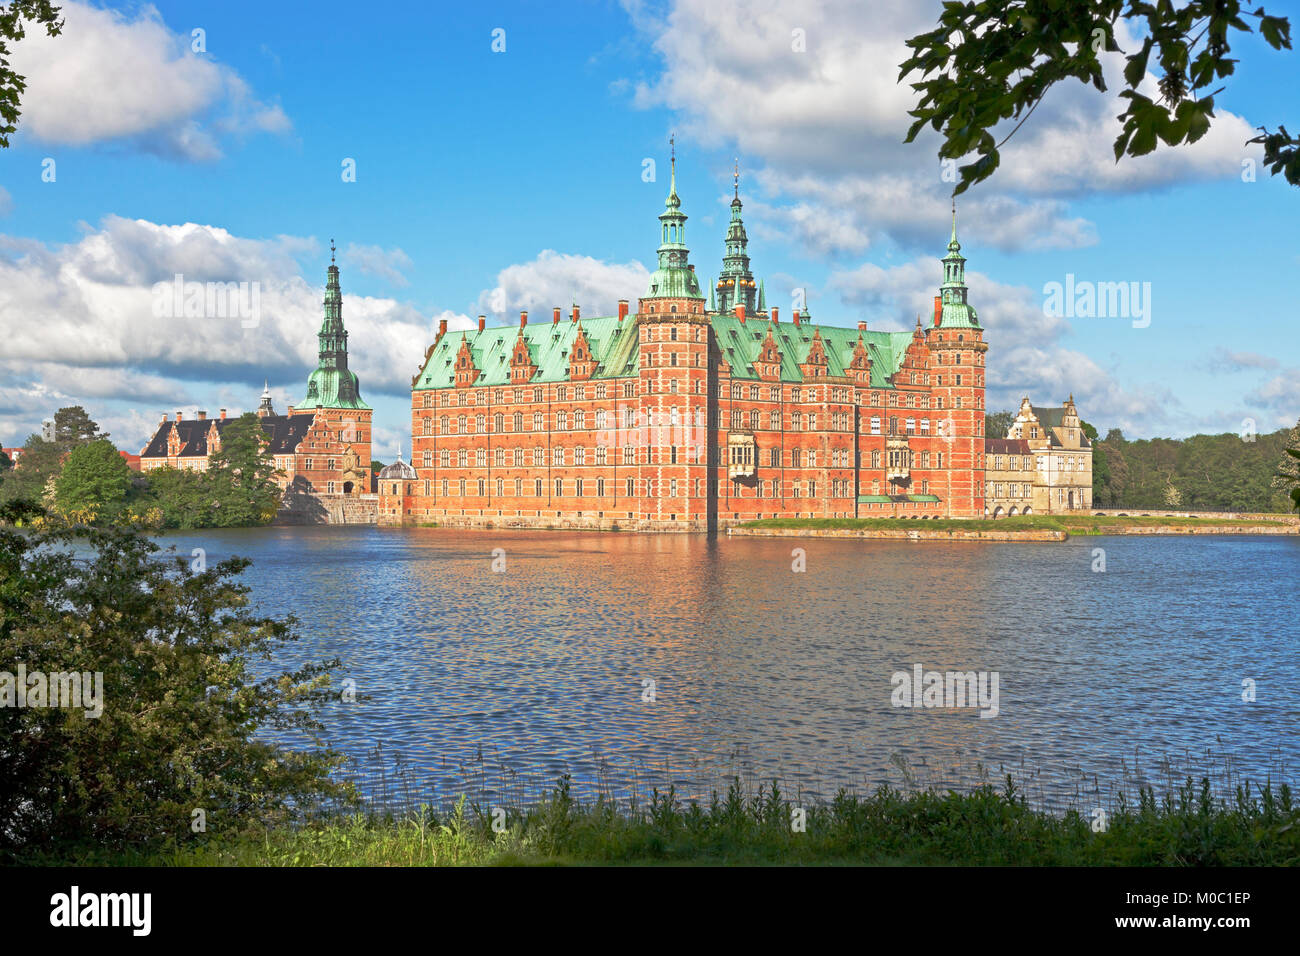 The Frederiksborg Castle in Dutch Renaissance style in Hillerød, North Sealand, Denmark, in bright summer morning sunshine seen through spring leaves. Stock Photo